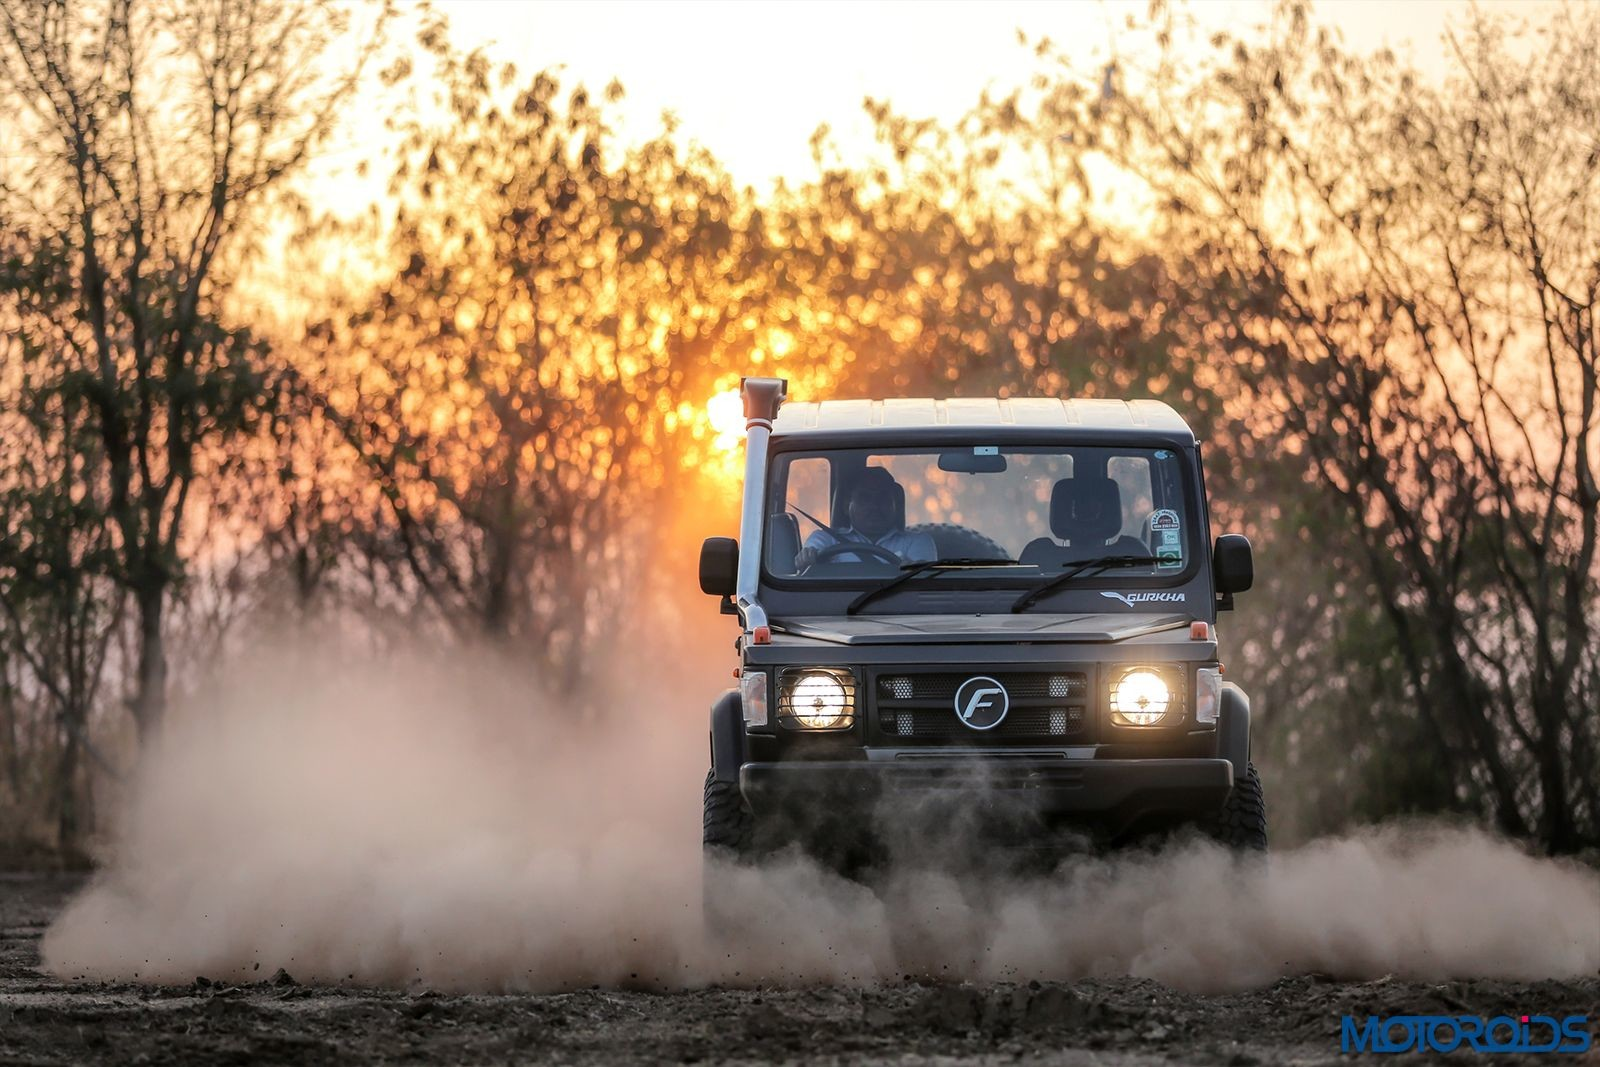 Stuck in the Thar? The new BS-IV compliant 2017 Force ...